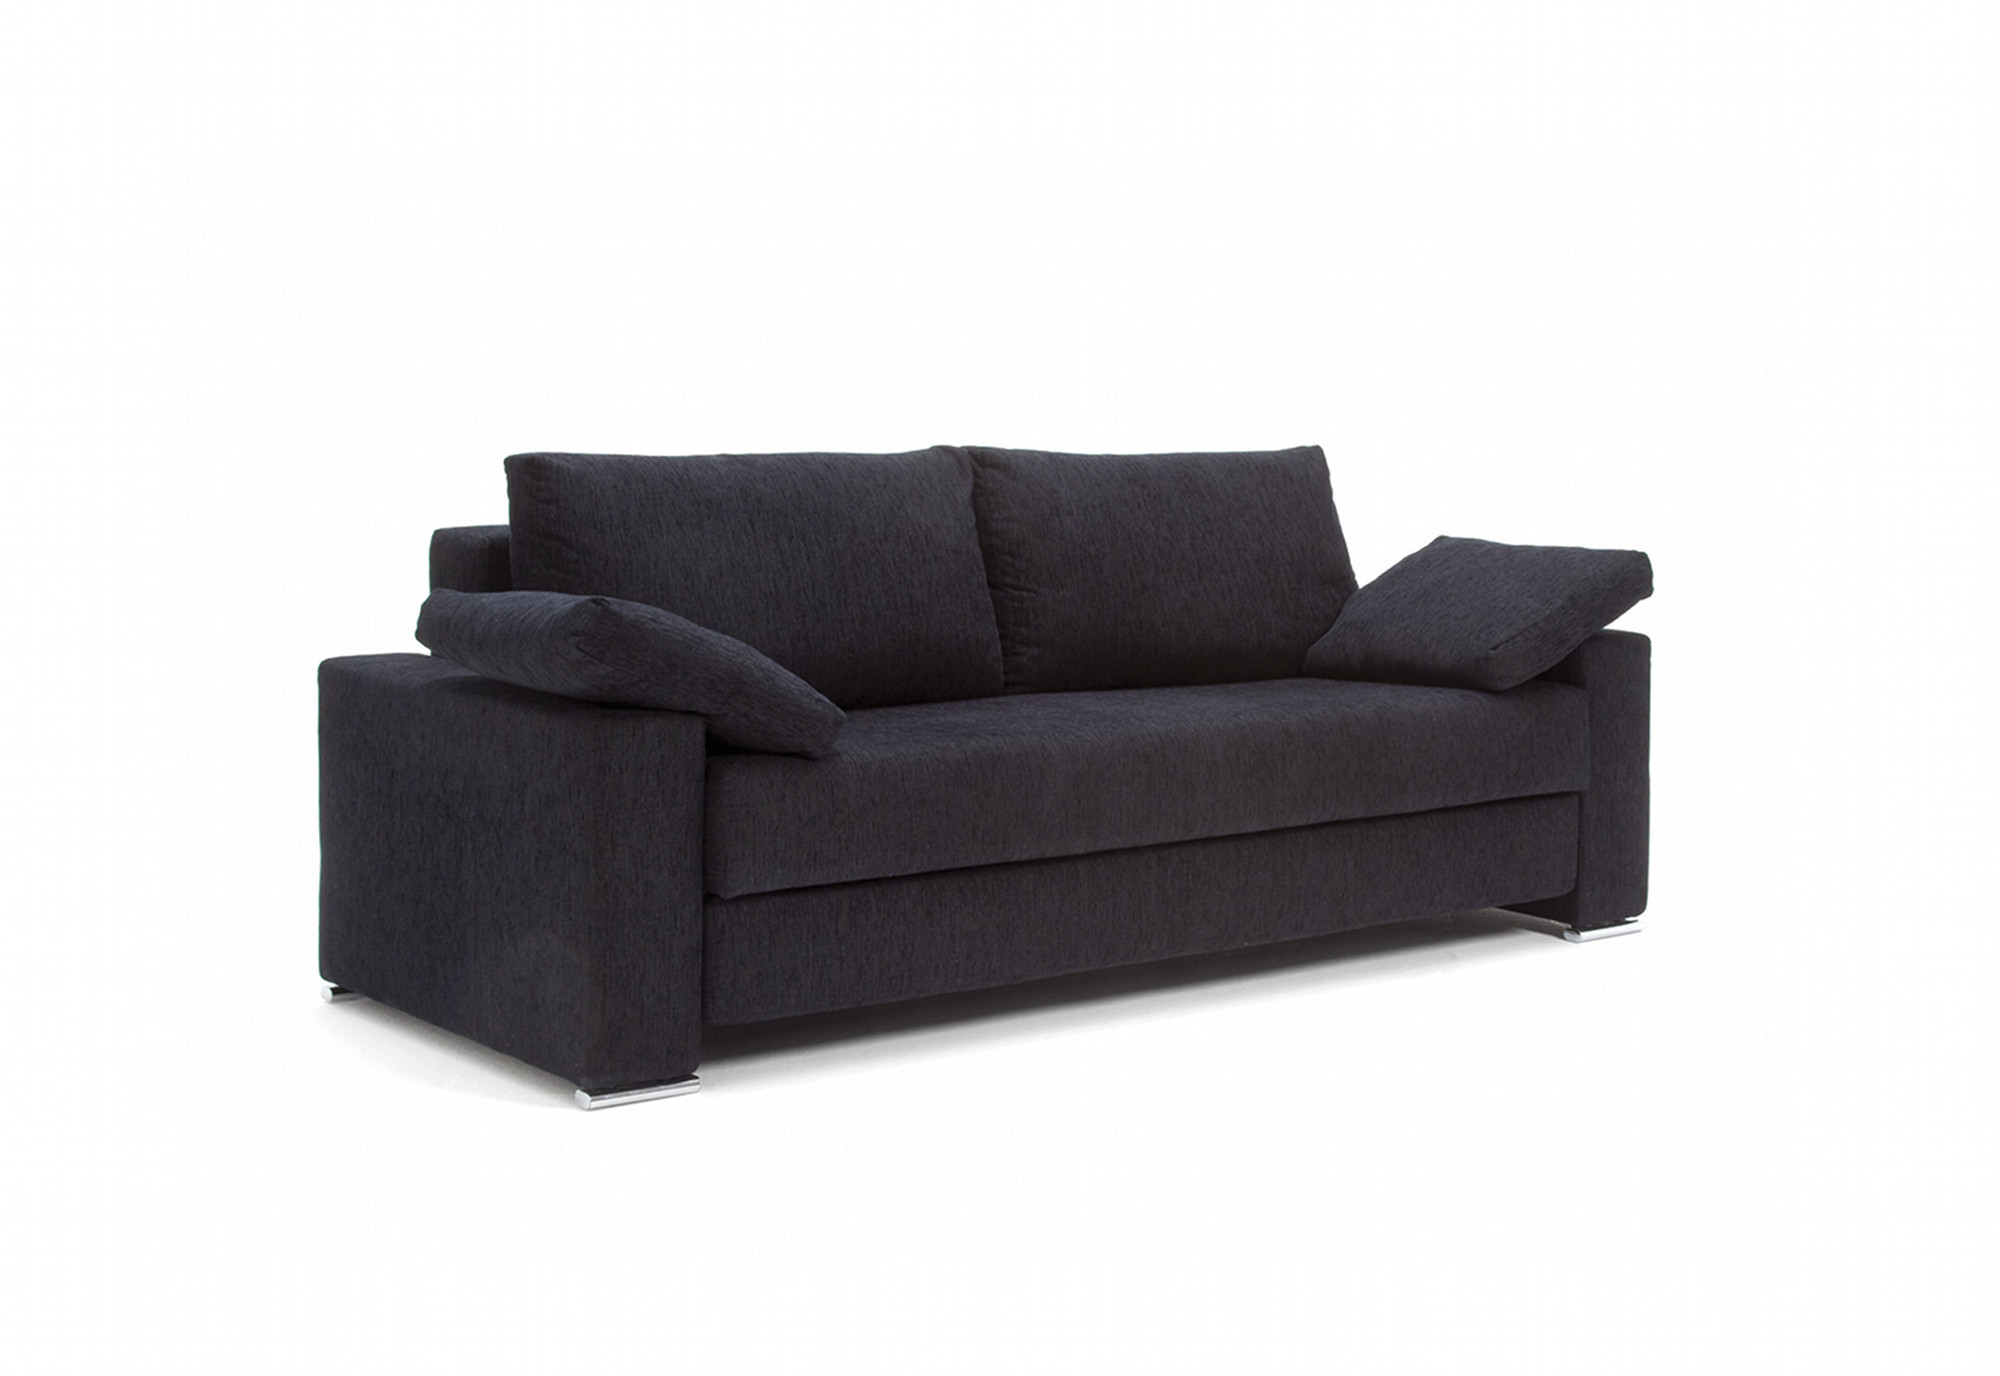 franz fertig loop schlafsofa neu mit rechnung vom. Black Bedroom Furniture Sets. Home Design Ideas